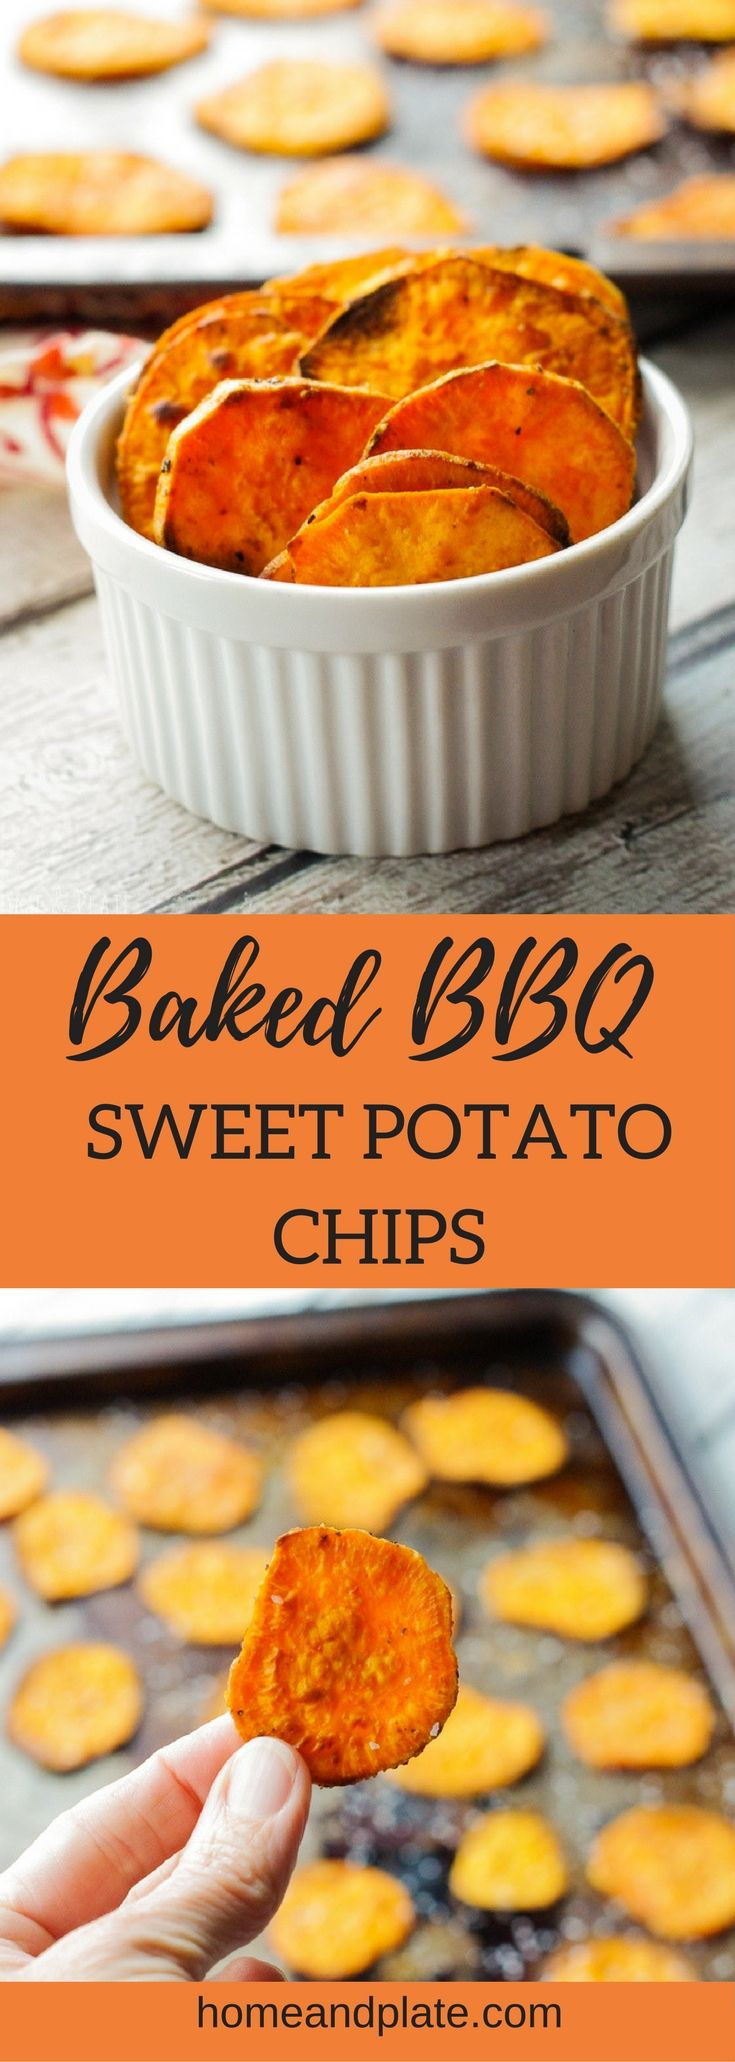 356 best H&P | RECIPES images on Pinterest | Cooking ...